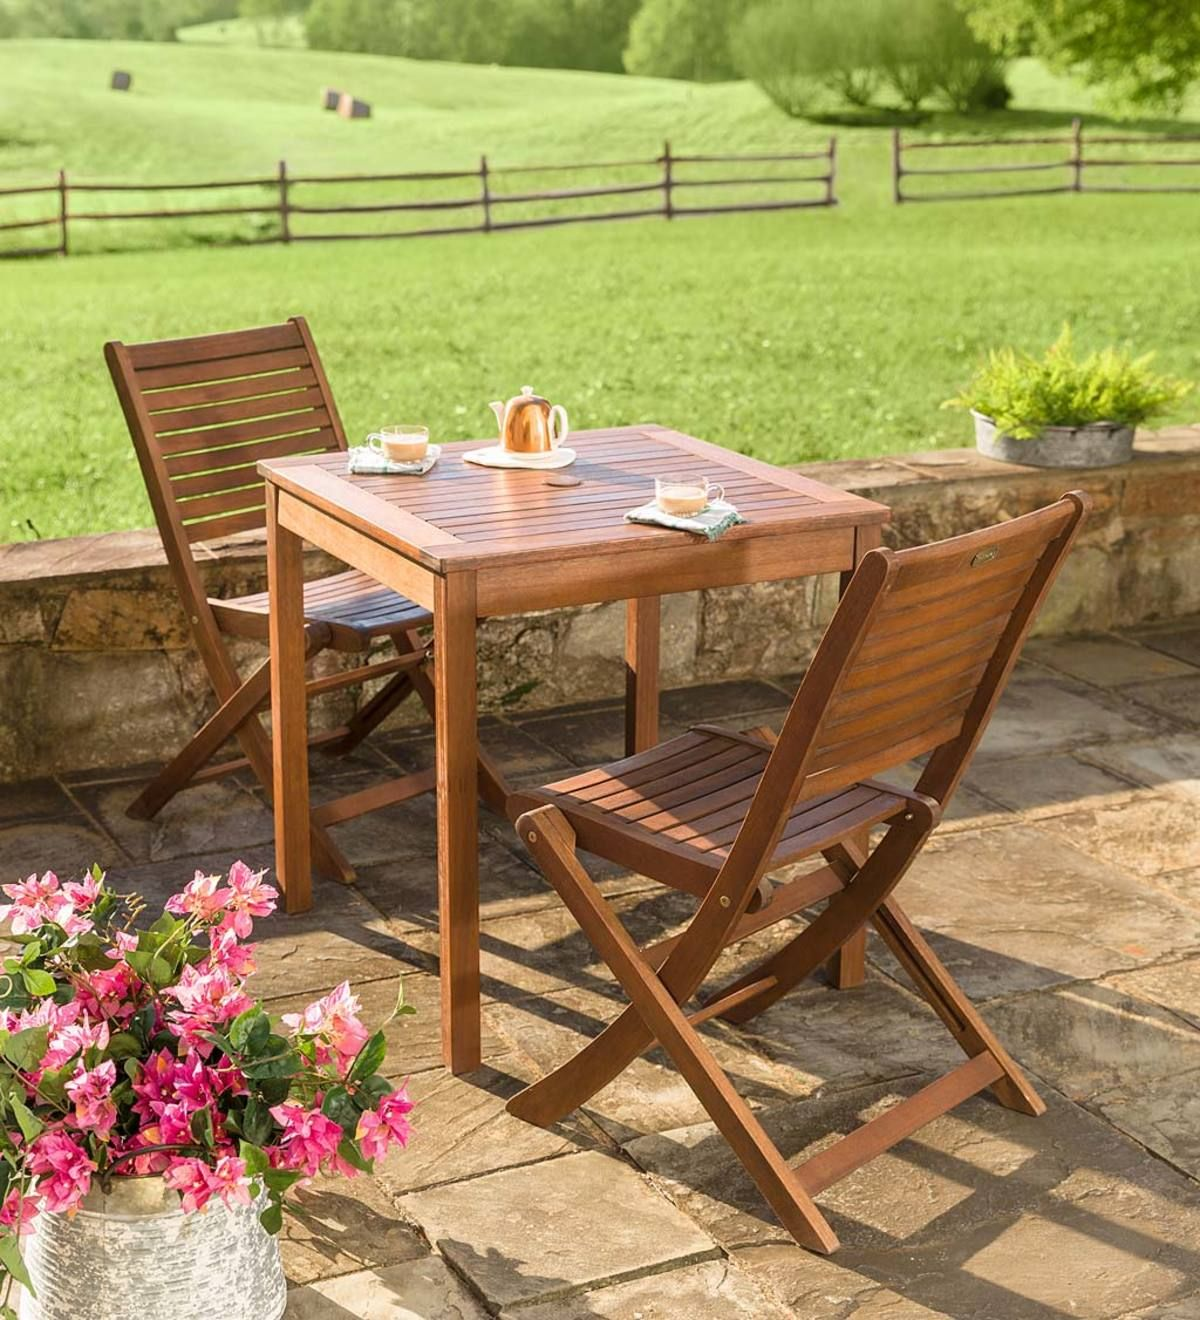 Eucalyptus Wood Outdoor Bistro Set Table And Two Chairs In 2020